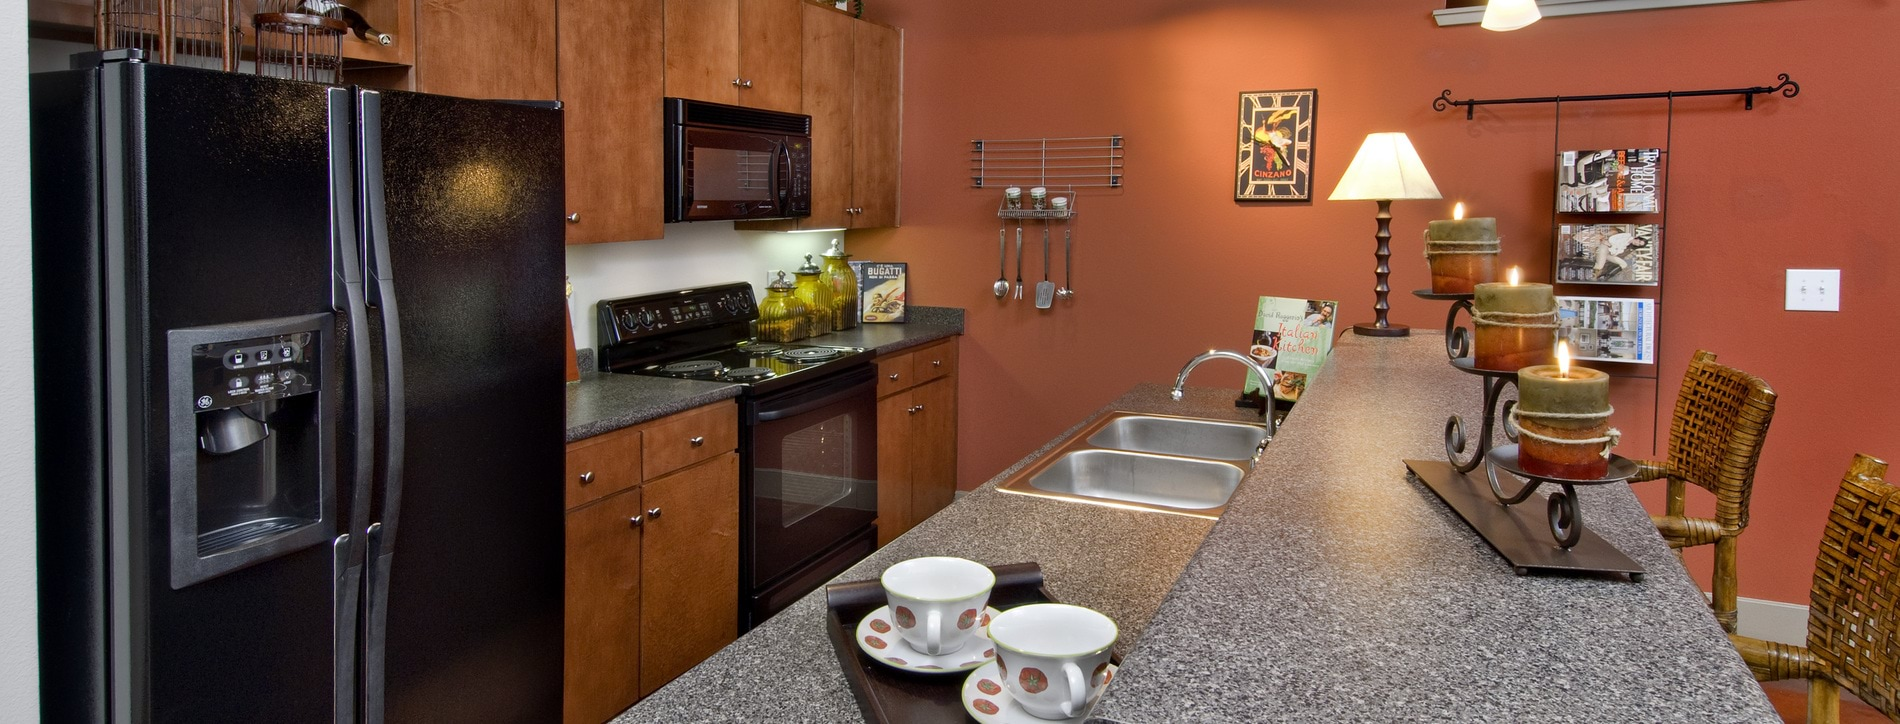 houston apartments | apartments in houston texas | lofts at the